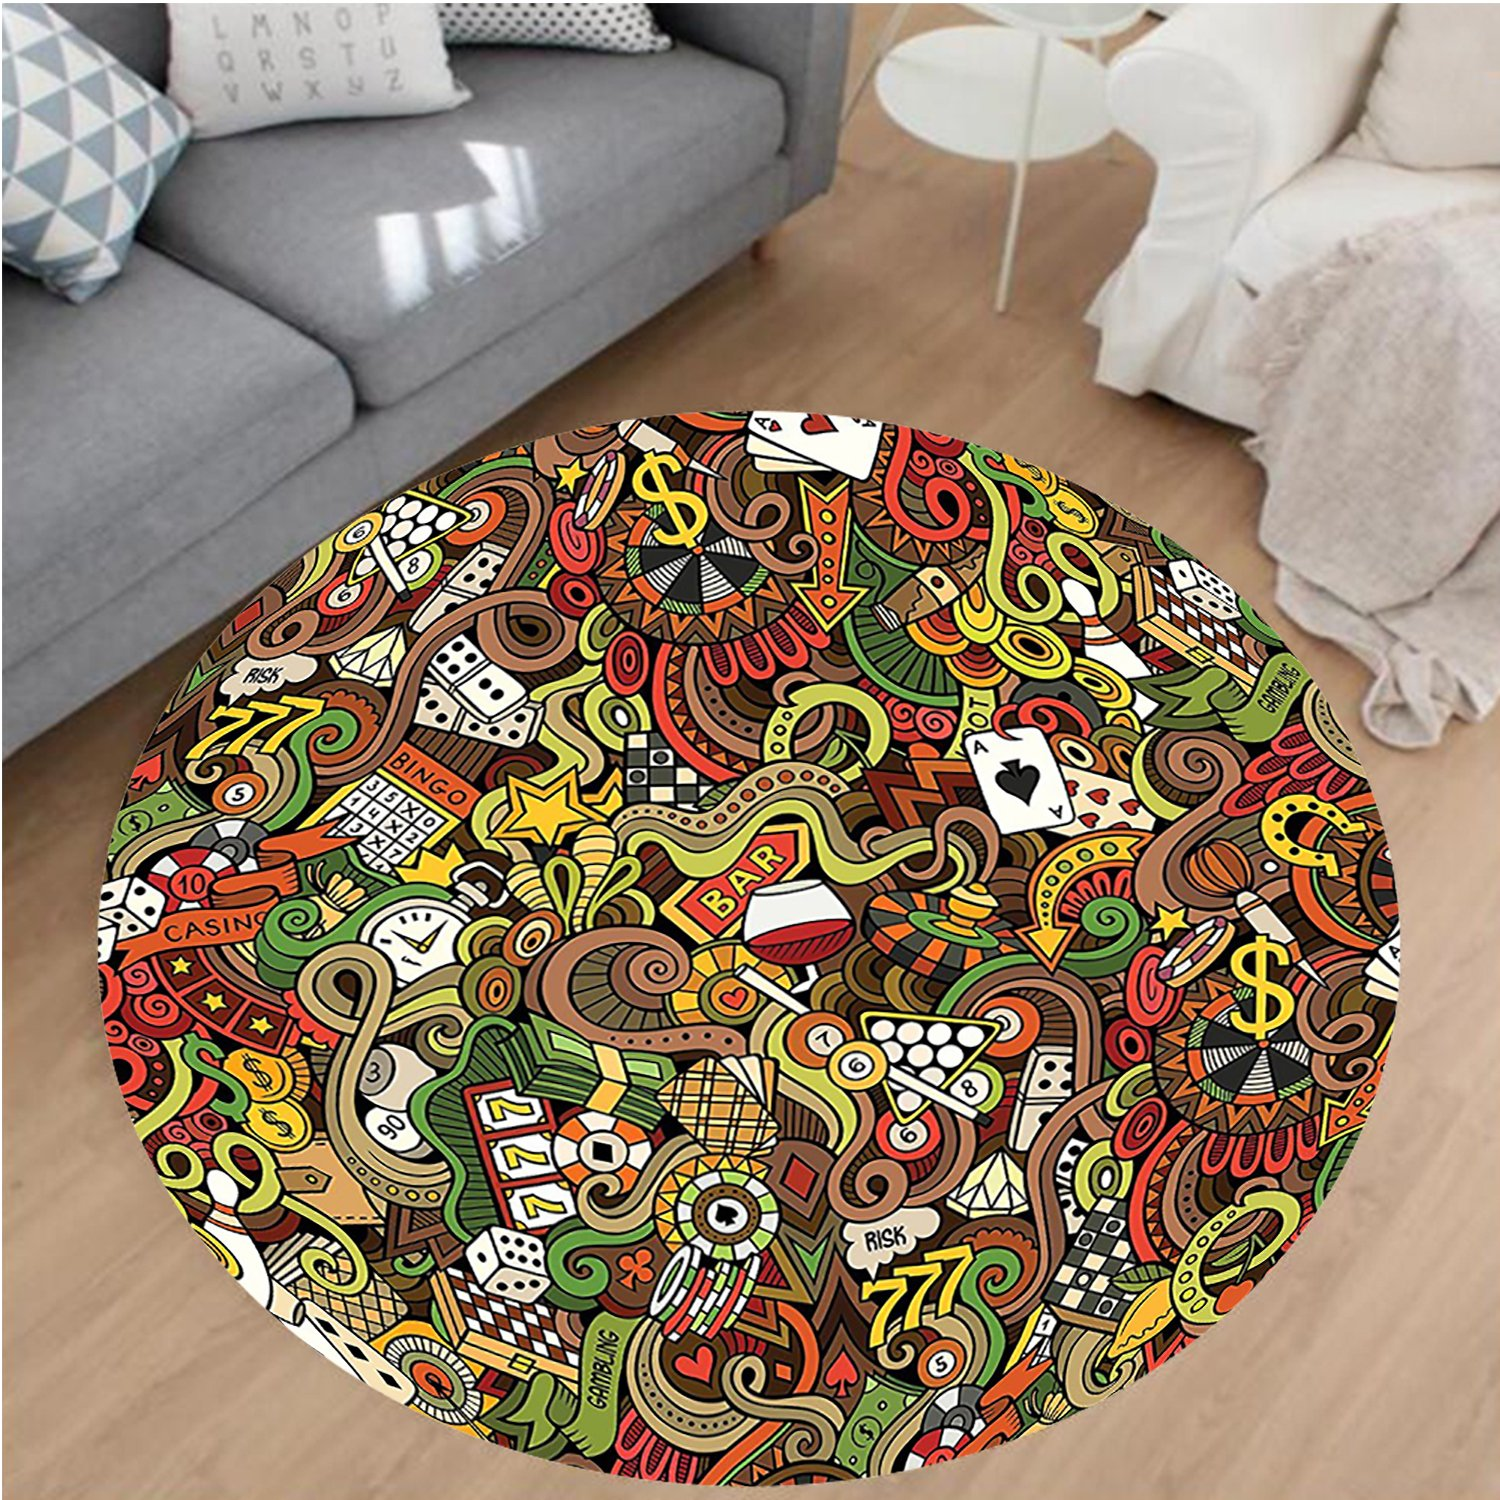 Nalahome Modern Flannel Microfiber Non-Slip Machine Washable Round Area Rug-Casino Decorations Doodles Style Art Bingo Excitement Checkers King Tambourine Vegas area rugs Home Decor-Round 71'' by Nalahome